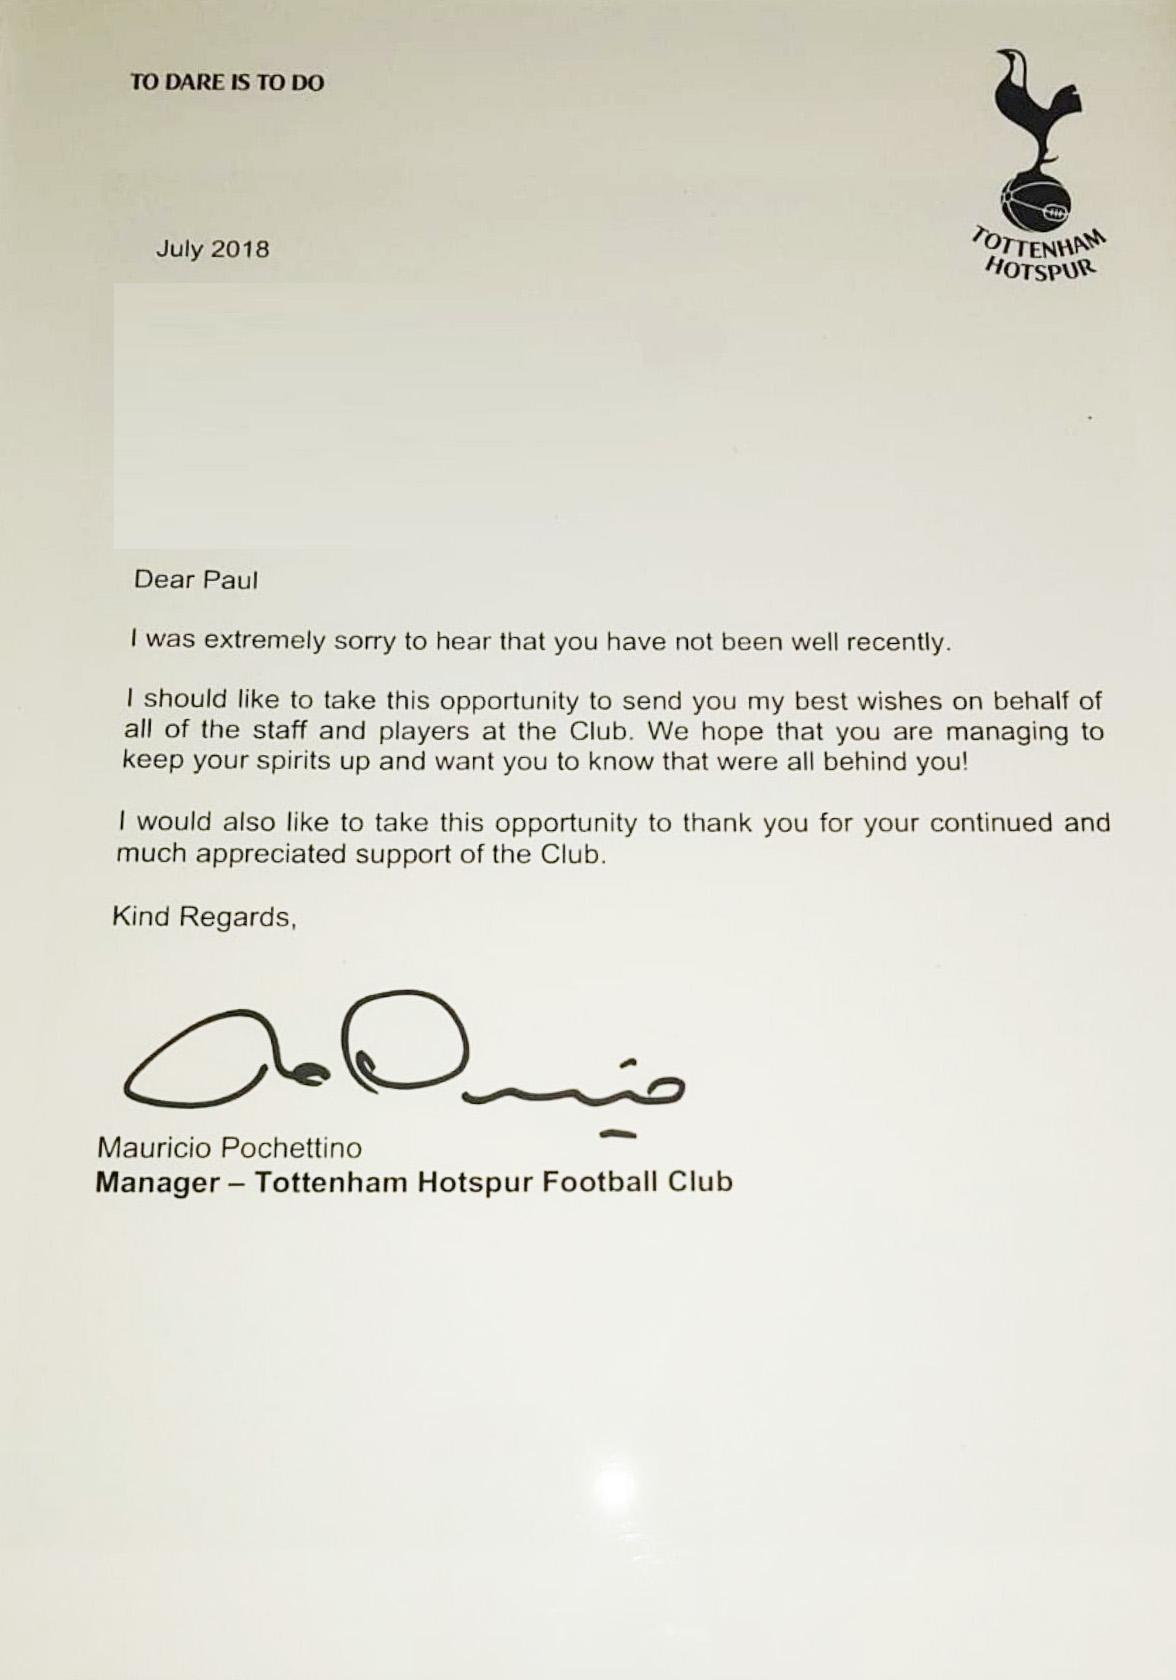 Mauricio Pochettino sent a kind letter to a Spurs fan in poor health